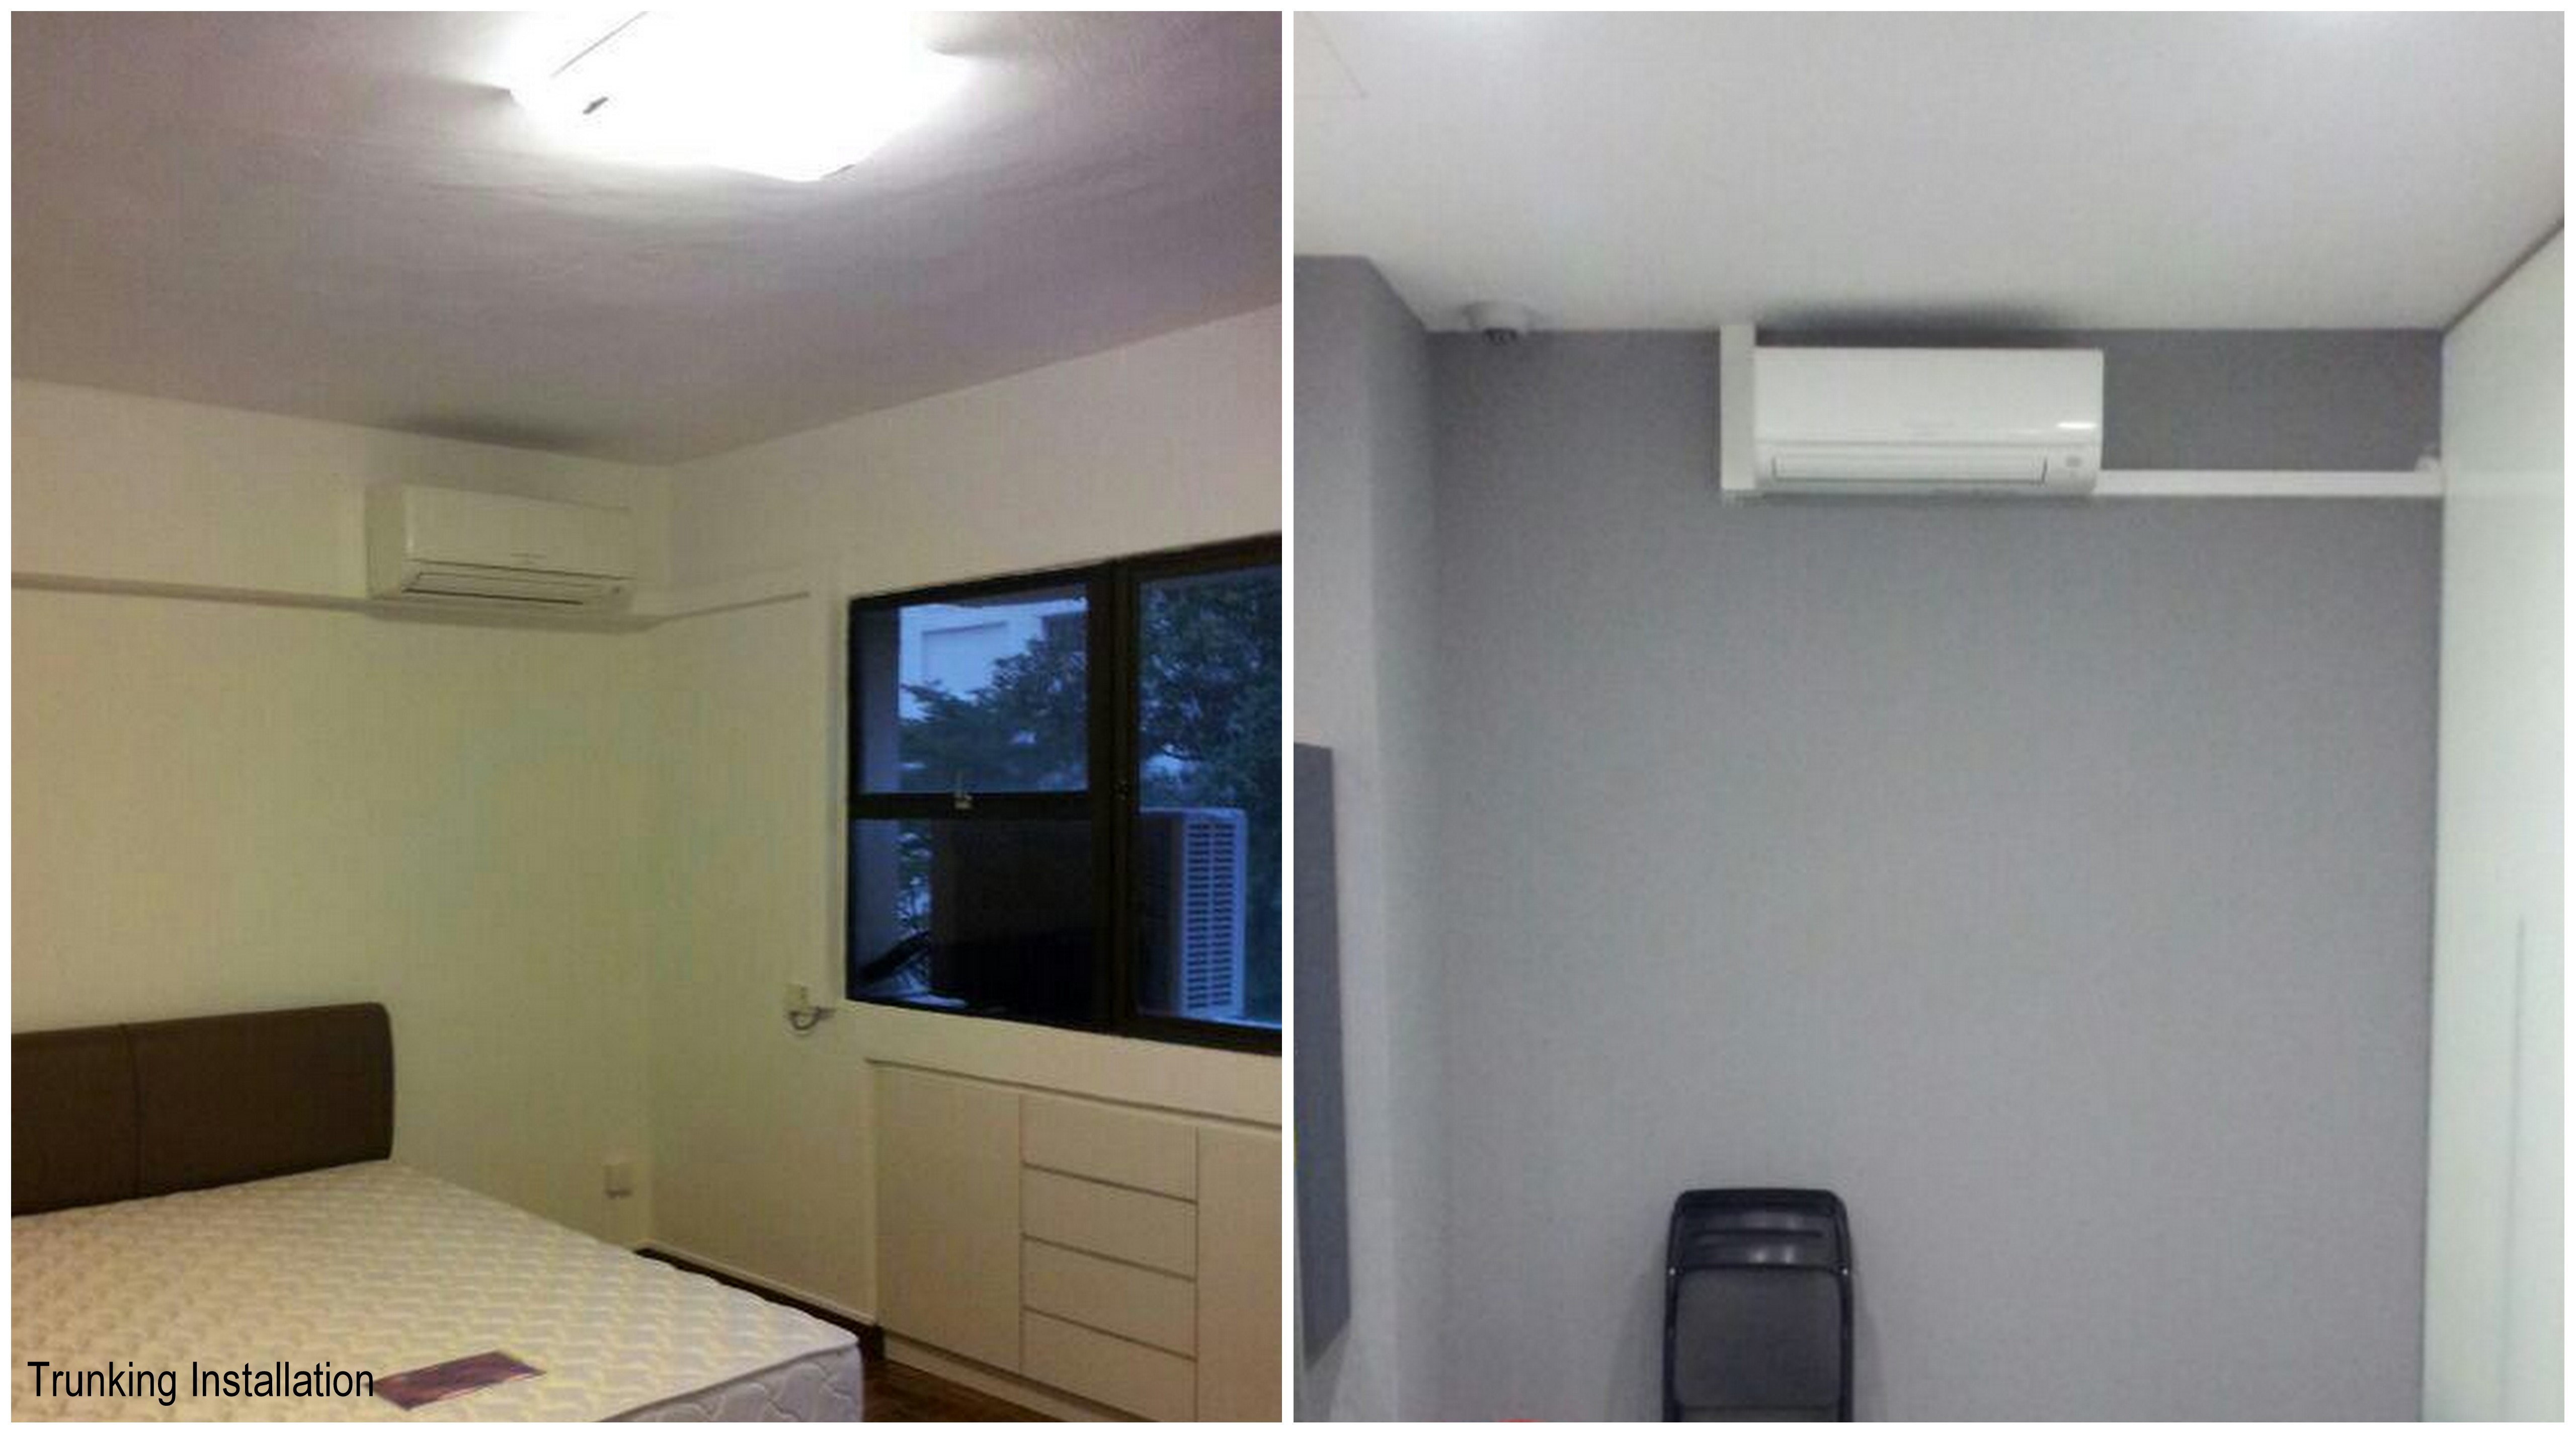 air conditioning trunking. lower installation cost. air conditioning trunking